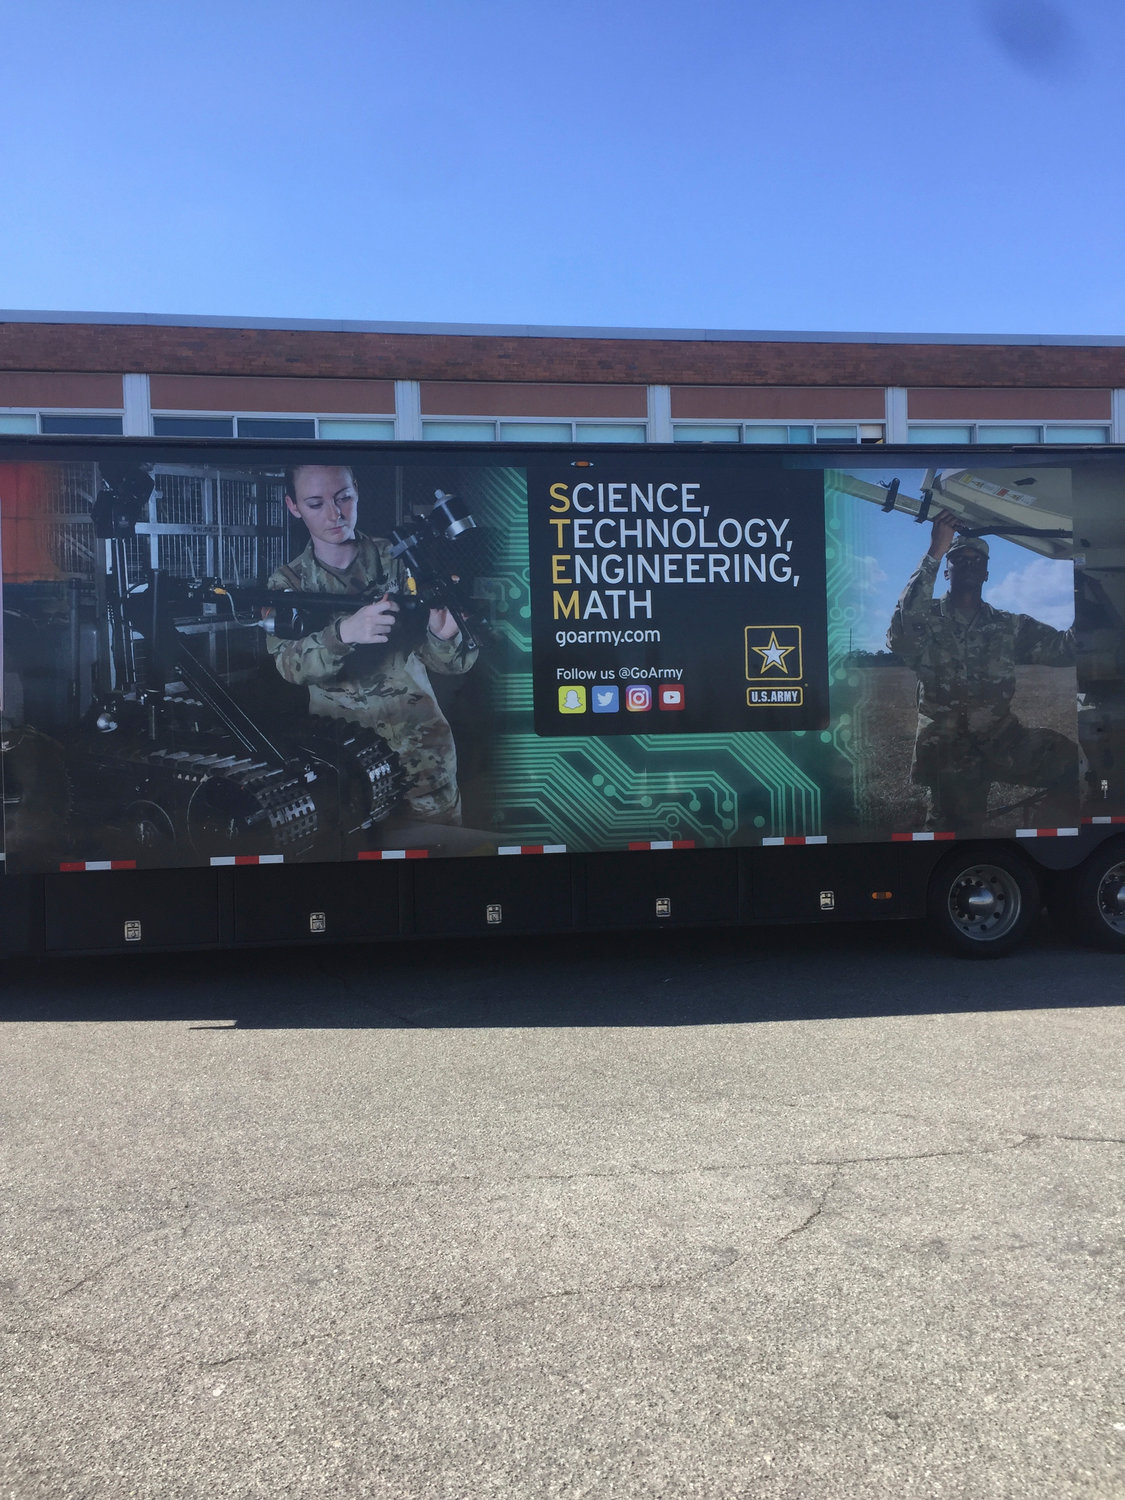 The students at Lawrence High School got to take a break from the clasroom when the U.S. Army's STEM truck made an appearance at the school.